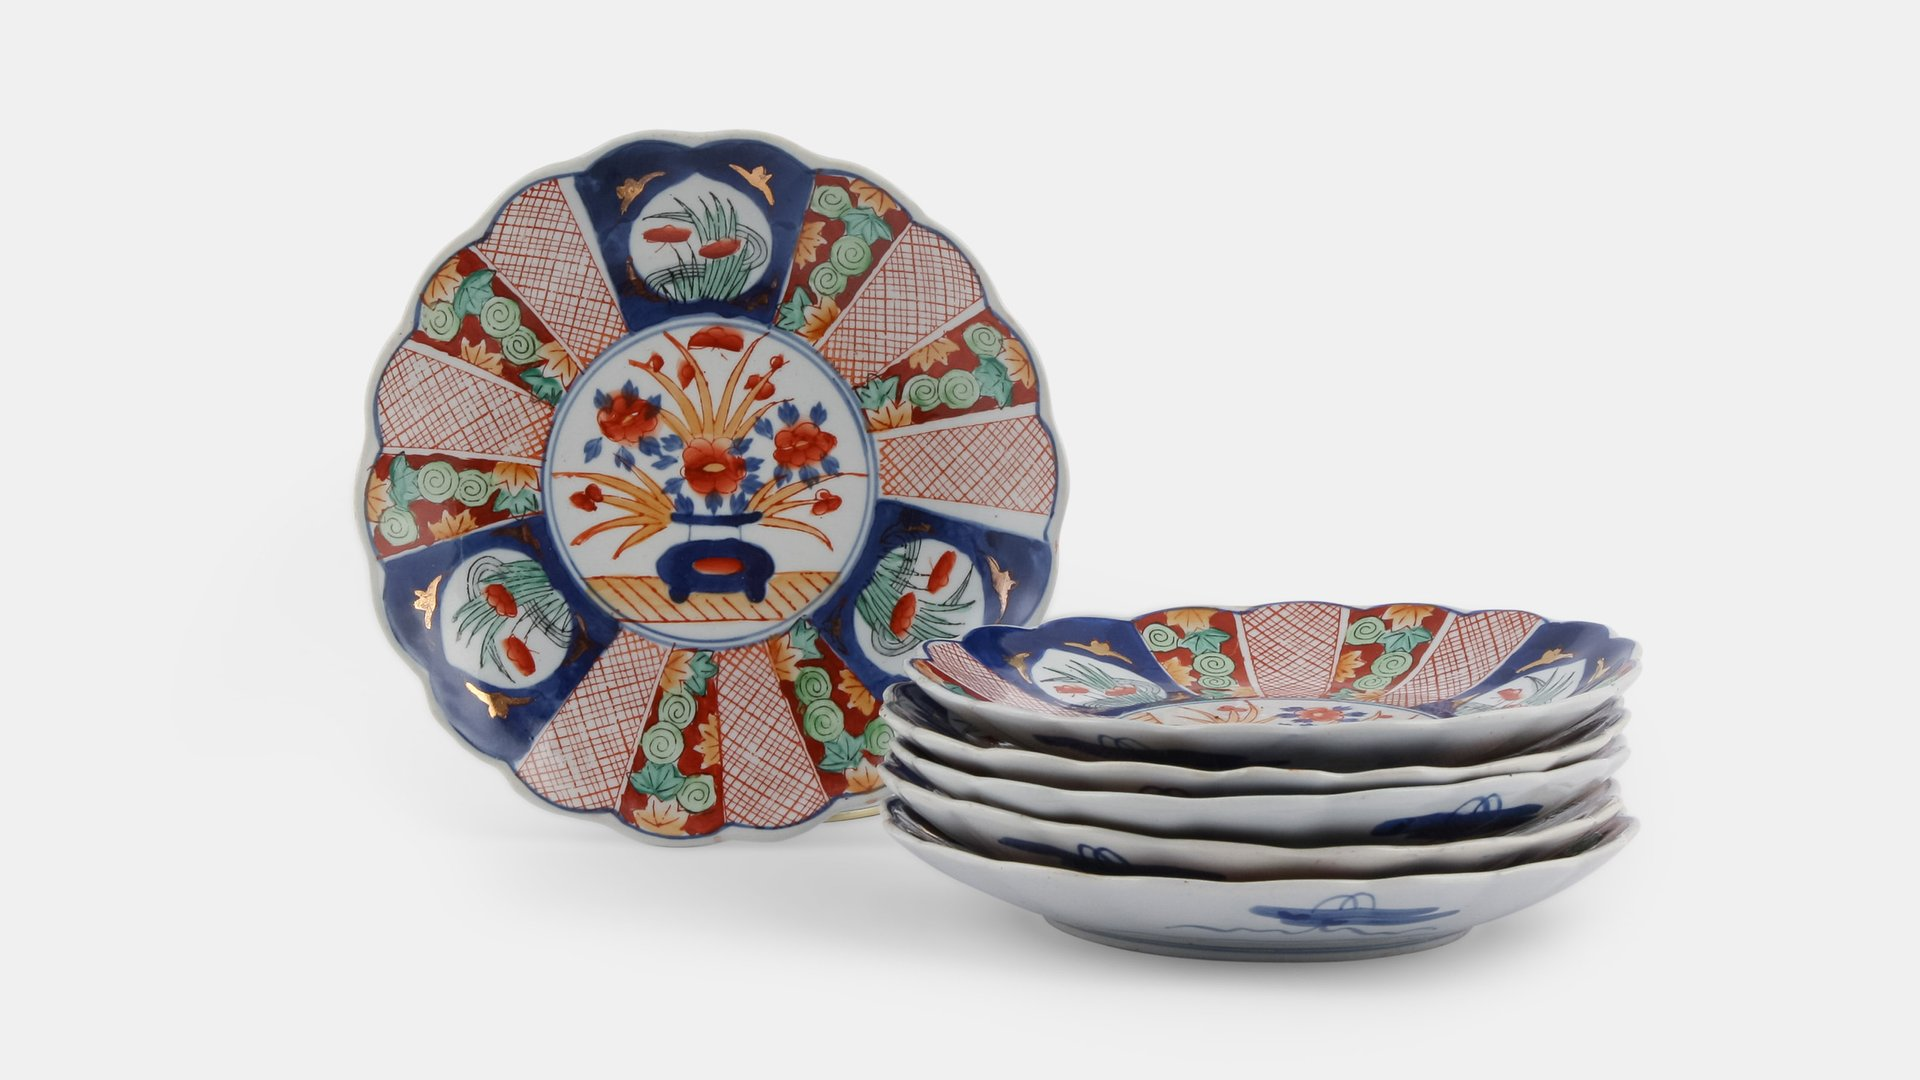 Small Antique Imari Plates Set of 6 & Small Antique Imari Plates Set of 6 for sale at Pamono